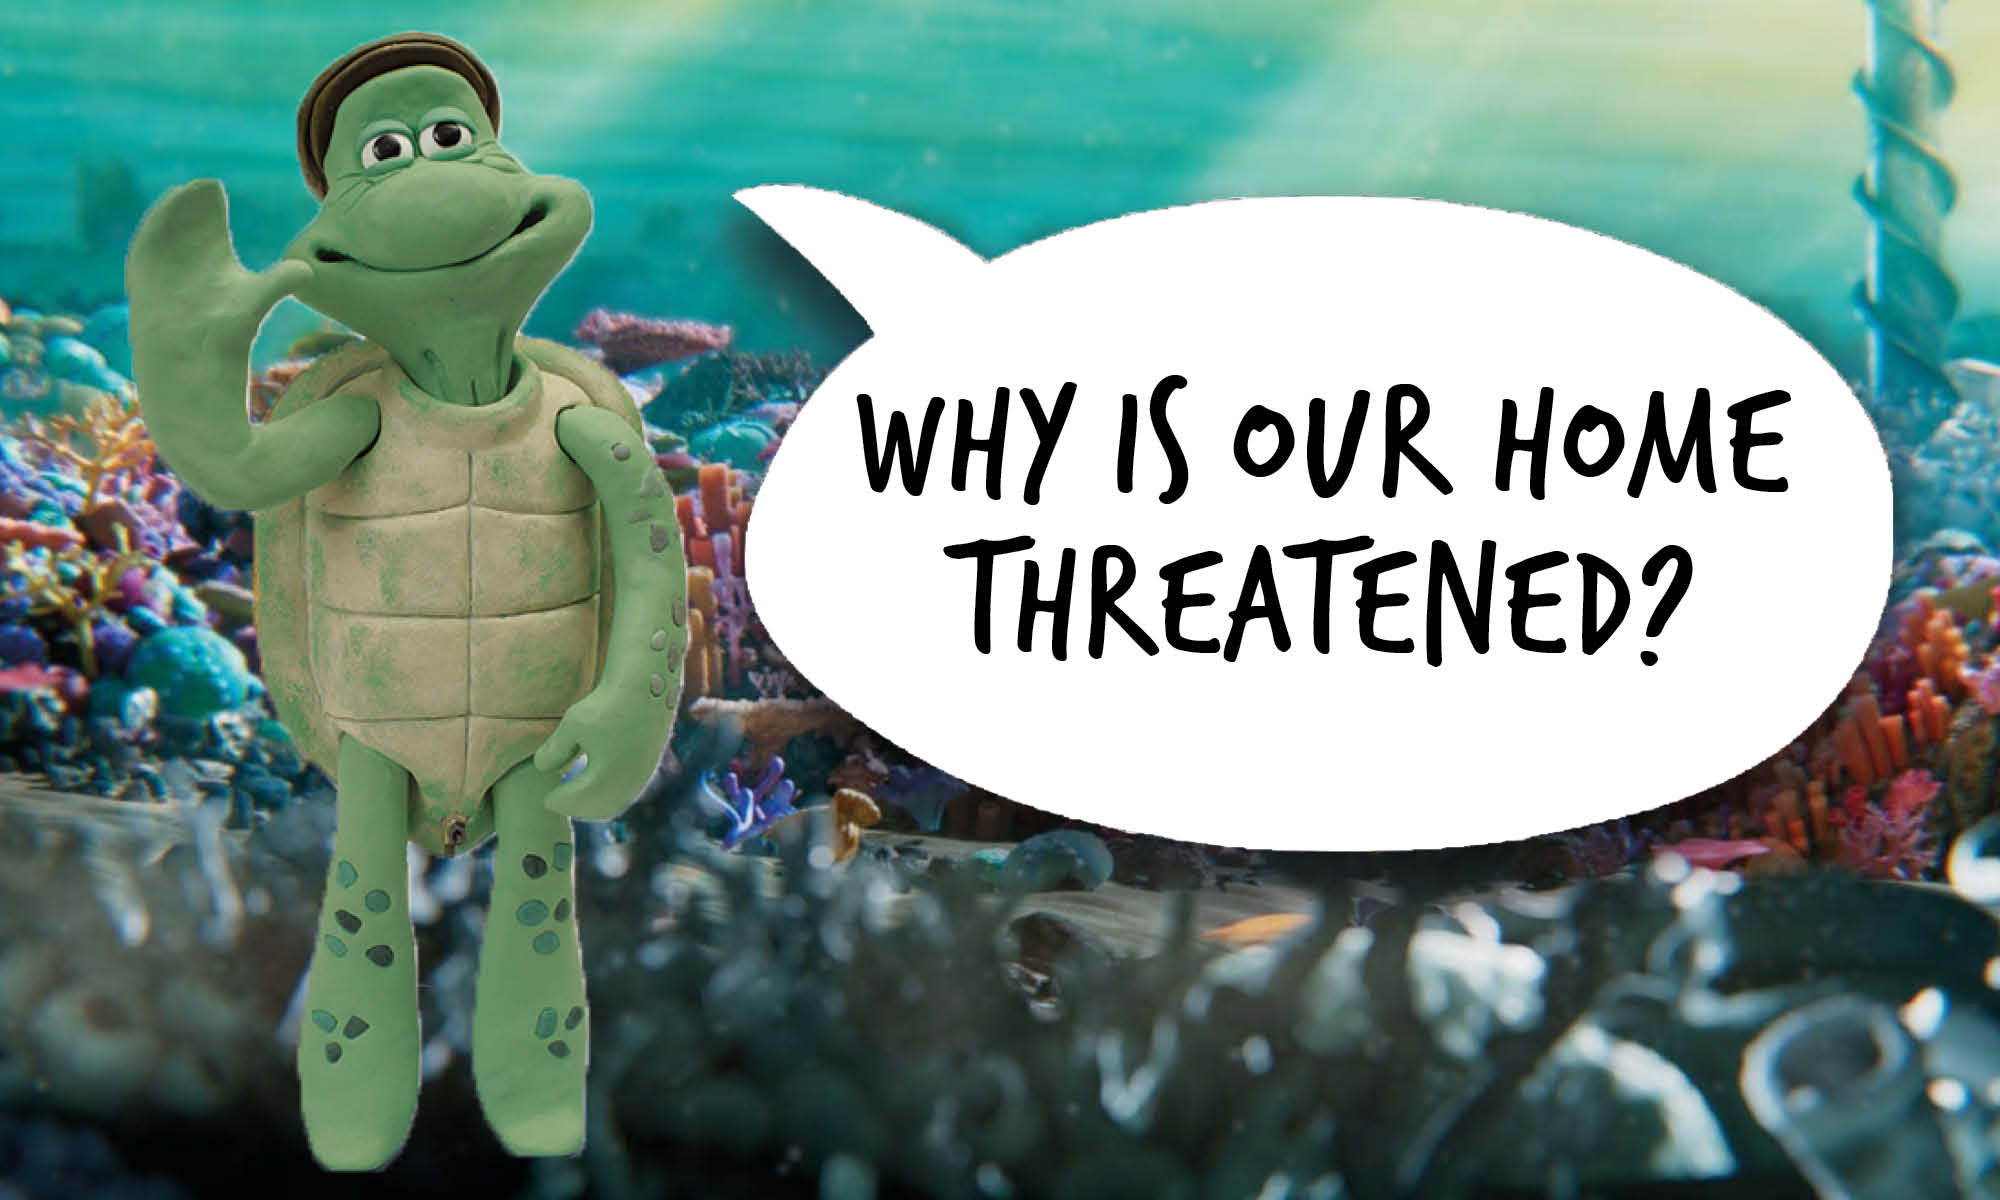 Older male cartoon turtle with a speech bubble that reads 'Why is our home threatened?'